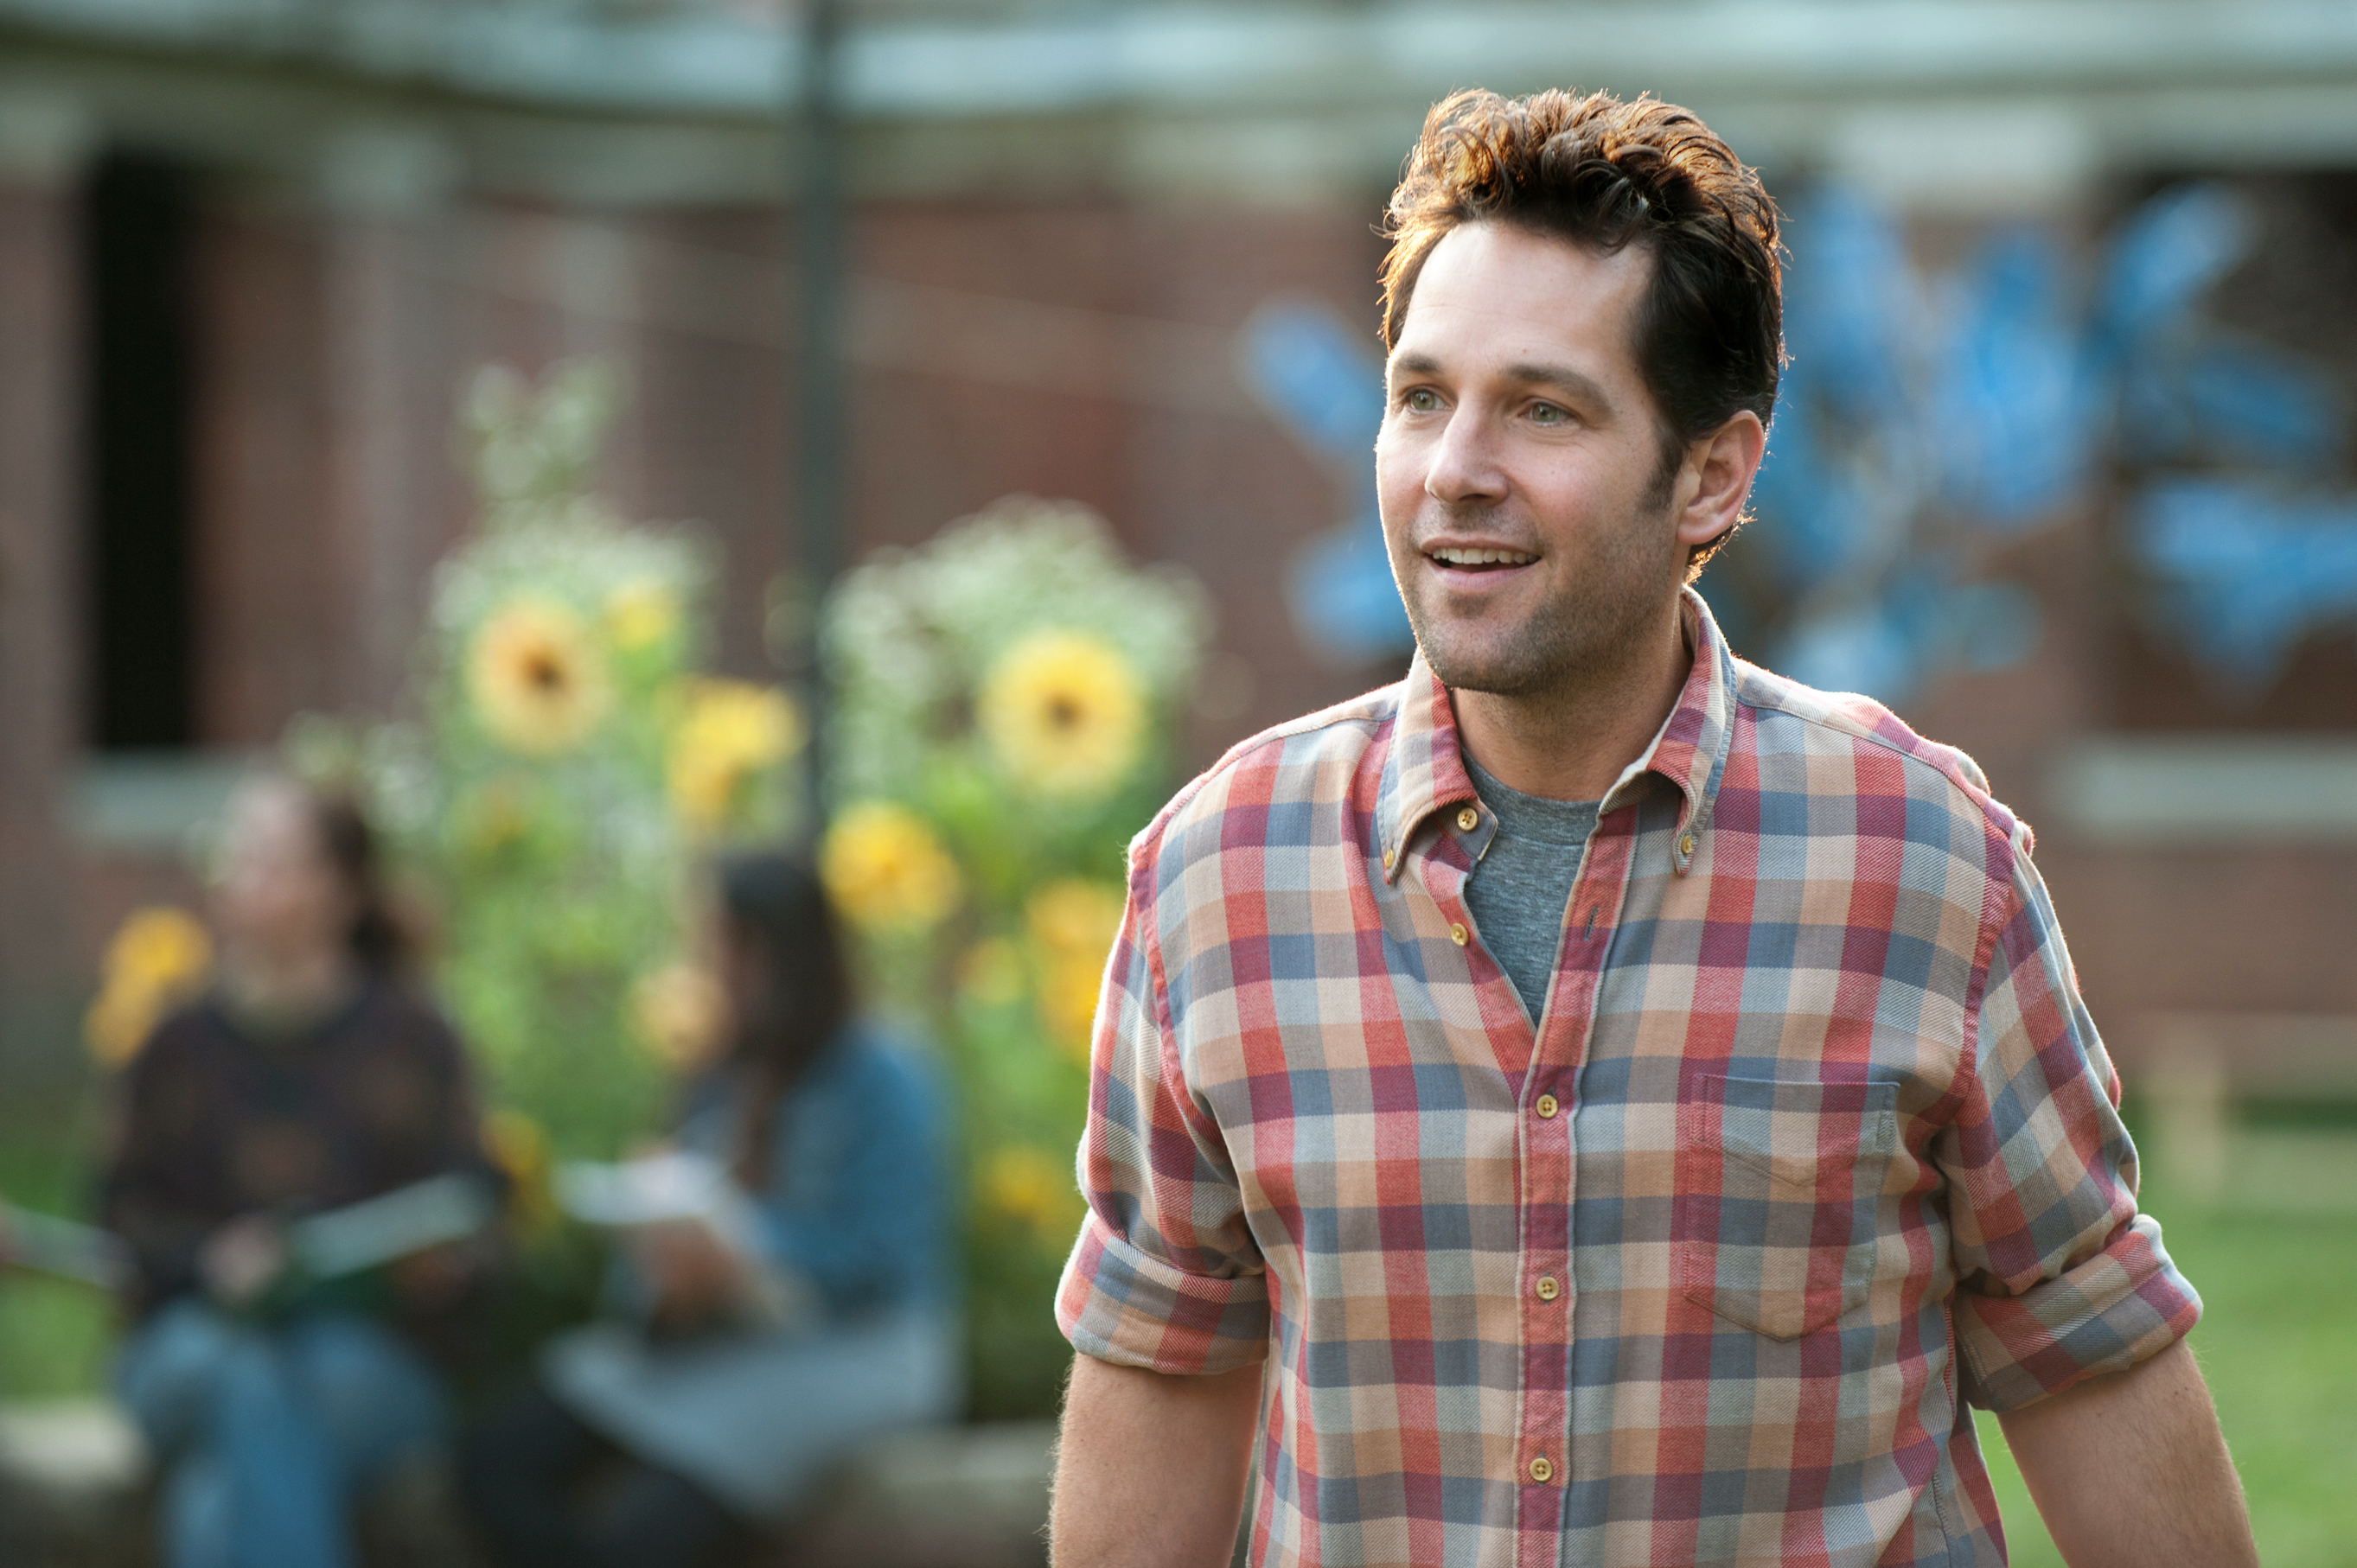 Paul Rudd Admission Character Photo